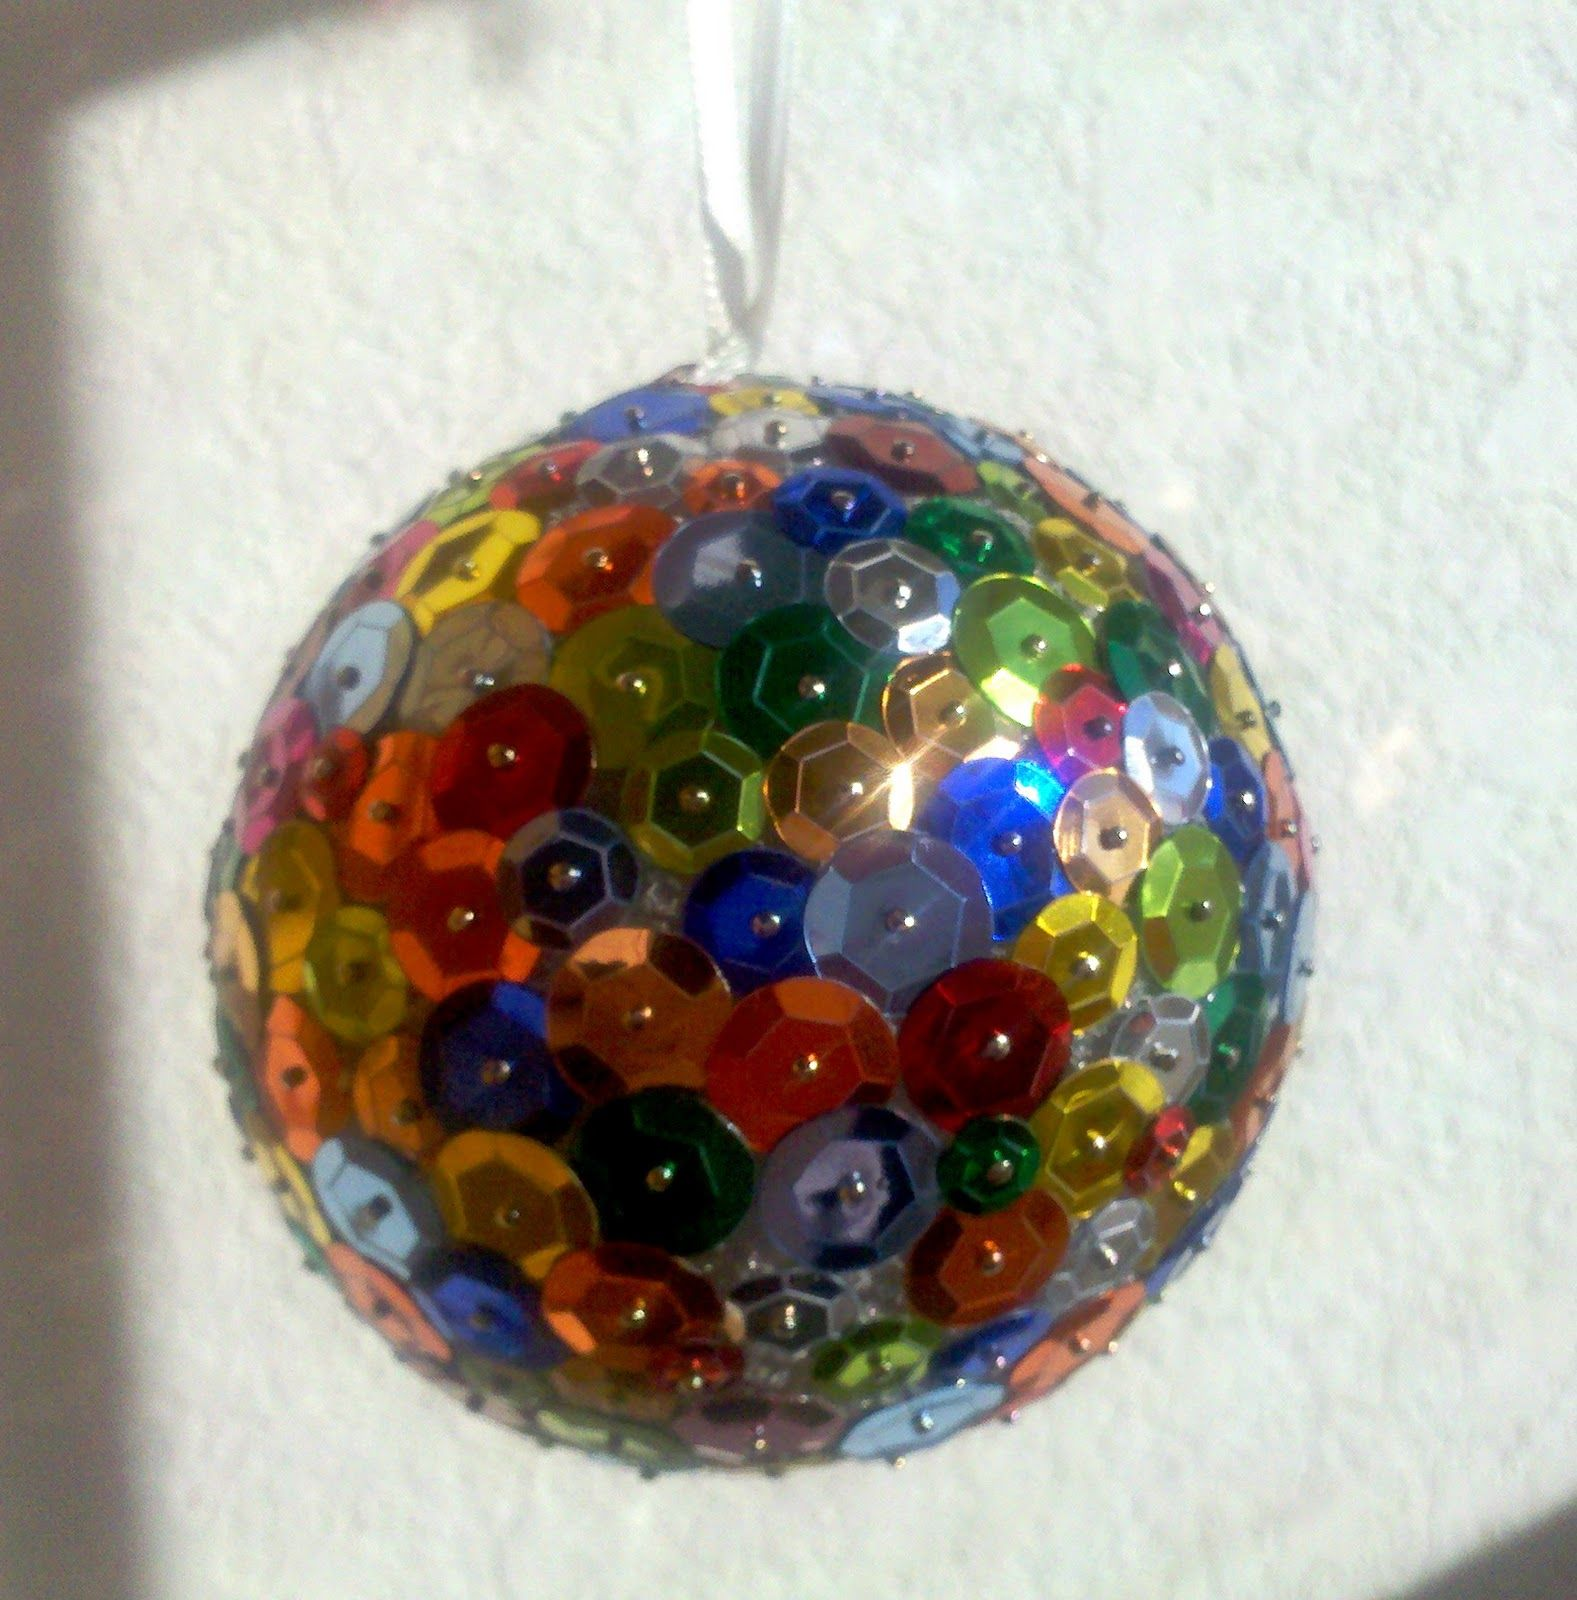 Disco Balls Decorations: Backstitch Baby: New Year's Eve Disco Ball- Party Favor